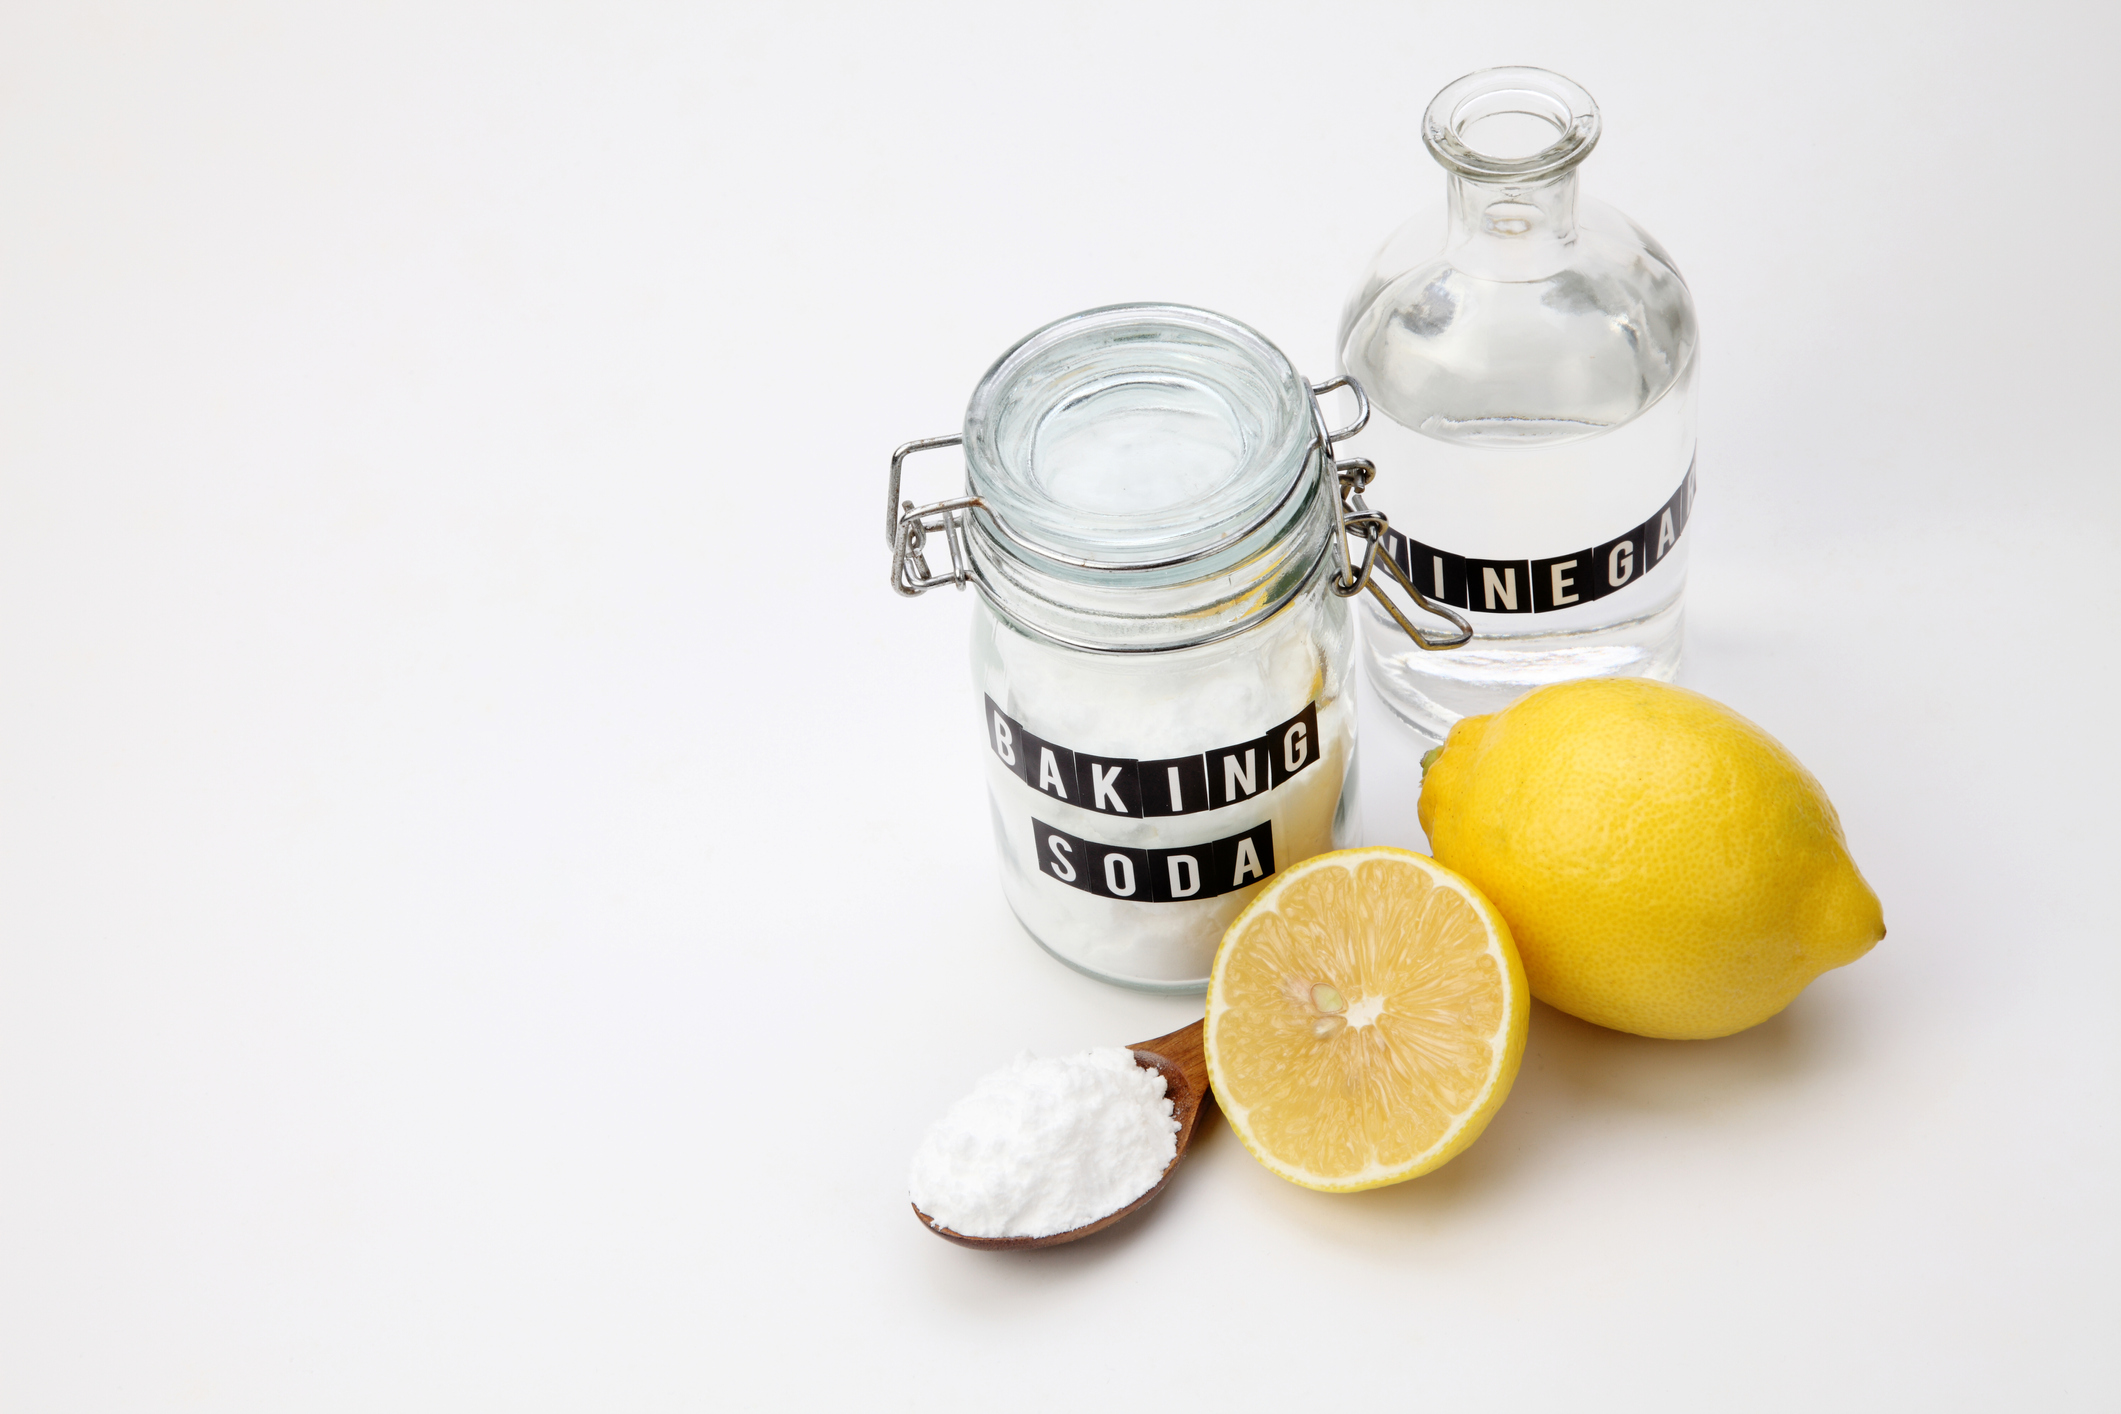 Non-toxic home cleaning 3 ingredients